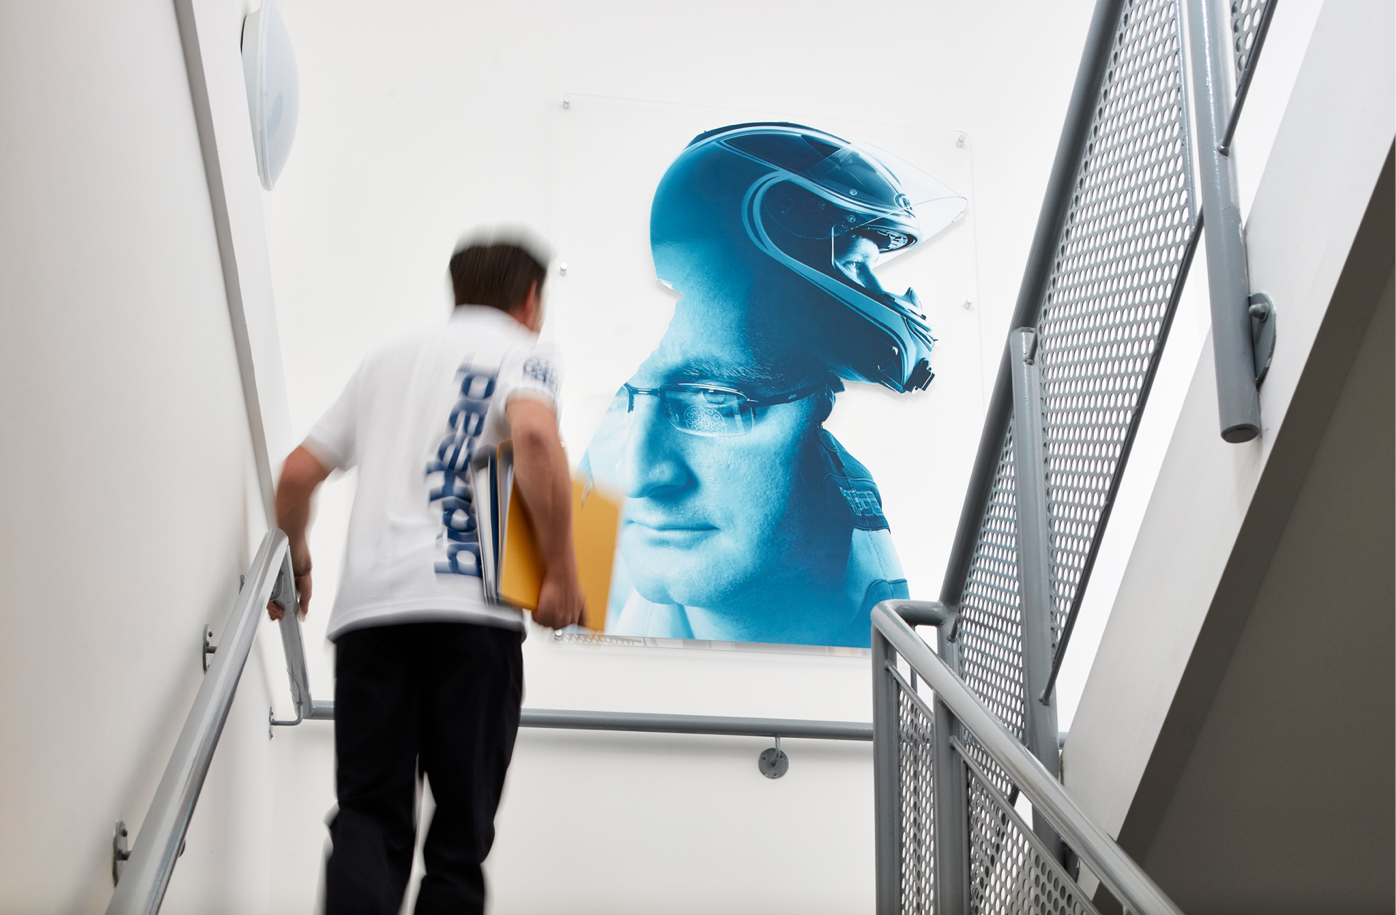 interior graphics on wall as man walks up staircase